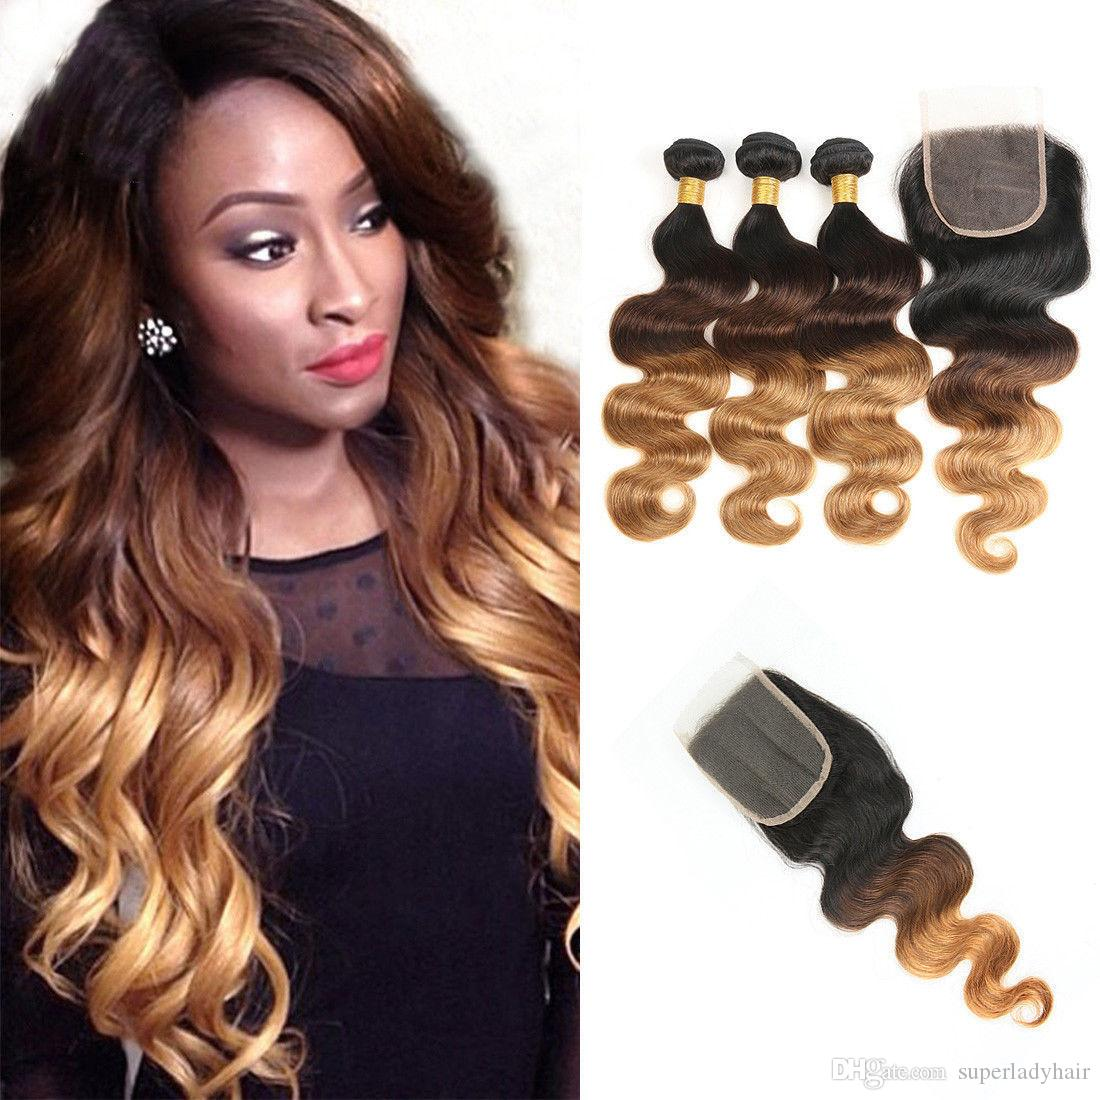 Brazilian Body Wave Human Hair Weaves Remy Virgin Hairpieces 3